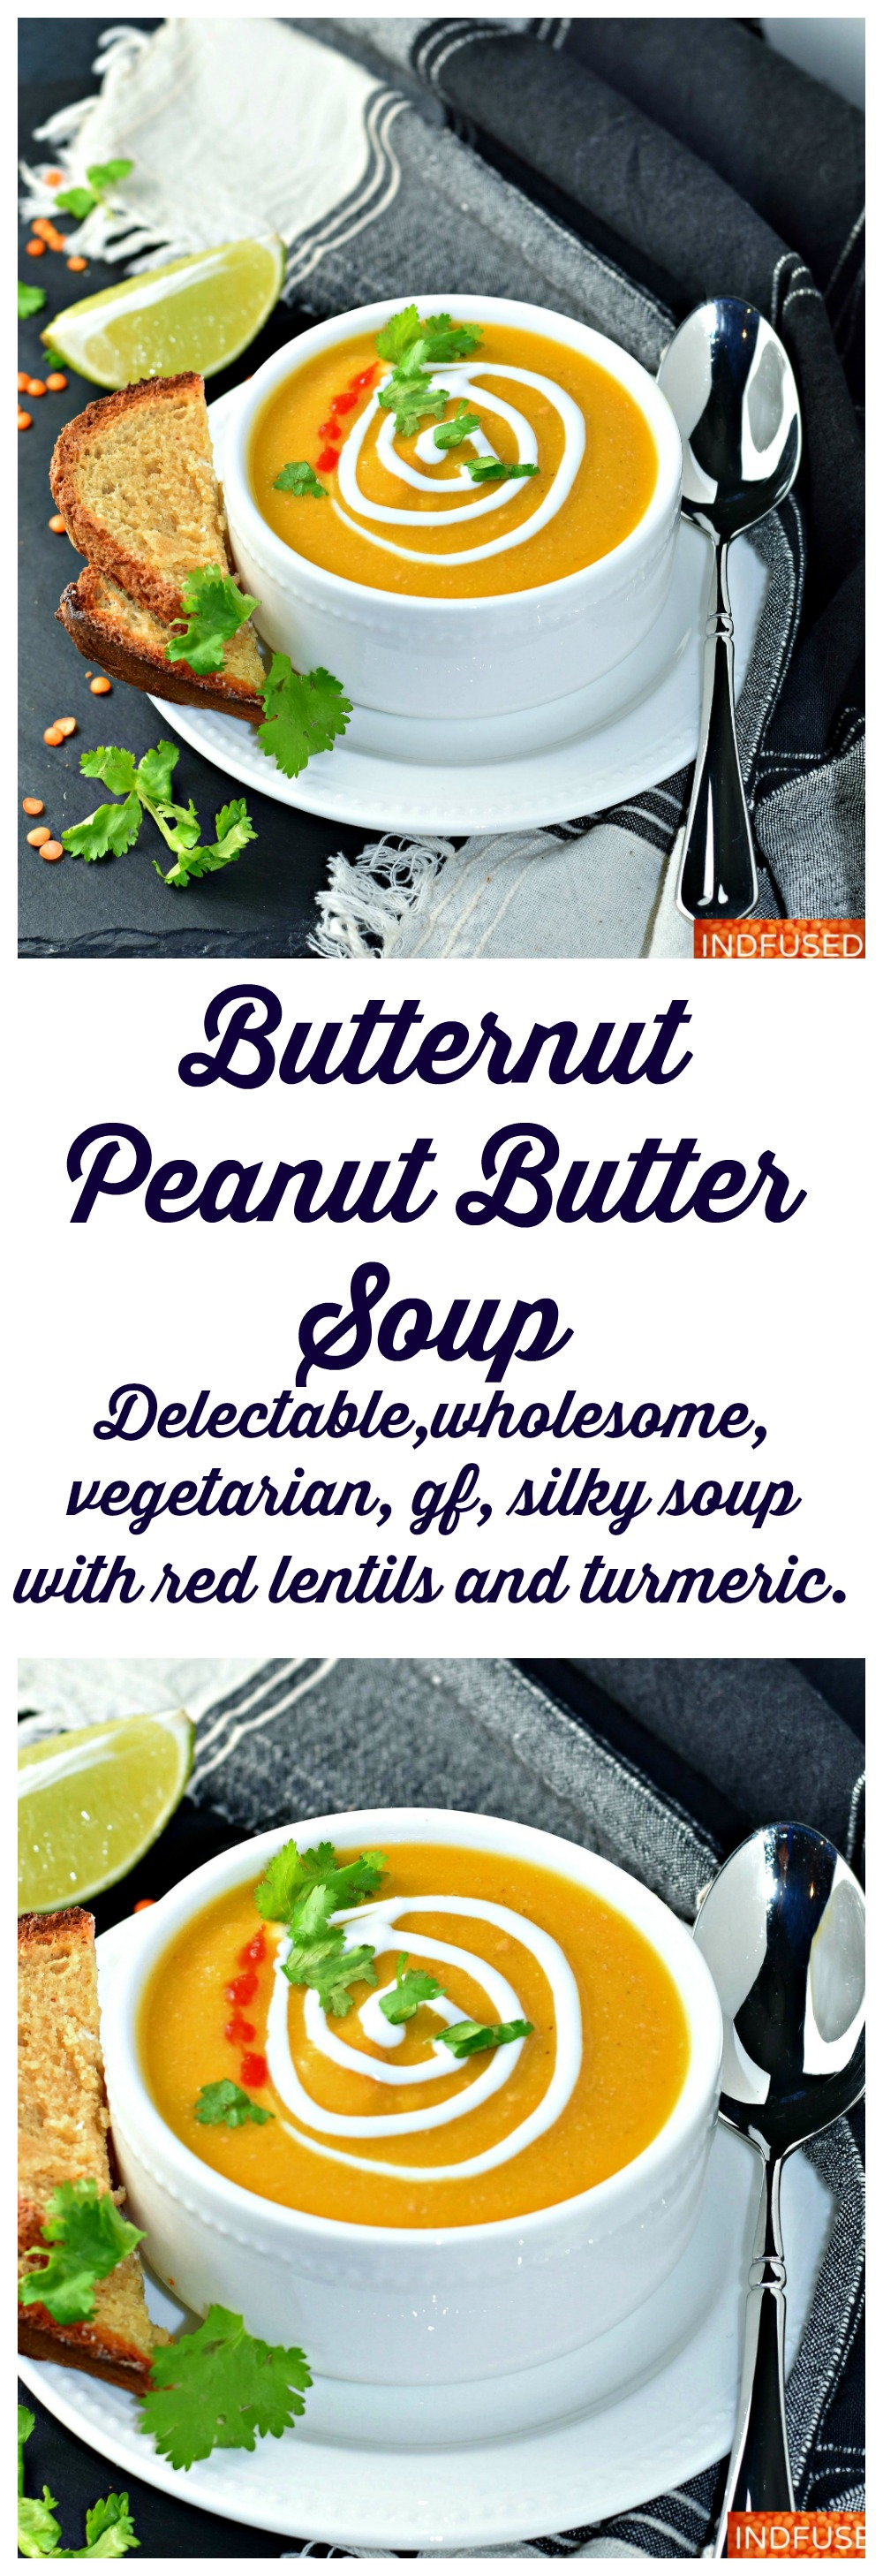 Butternut Peanut Butter Soup- delectable, wholesome, hearty, vegetarian, vegan, gluten free soup with red lentils and turmeric.